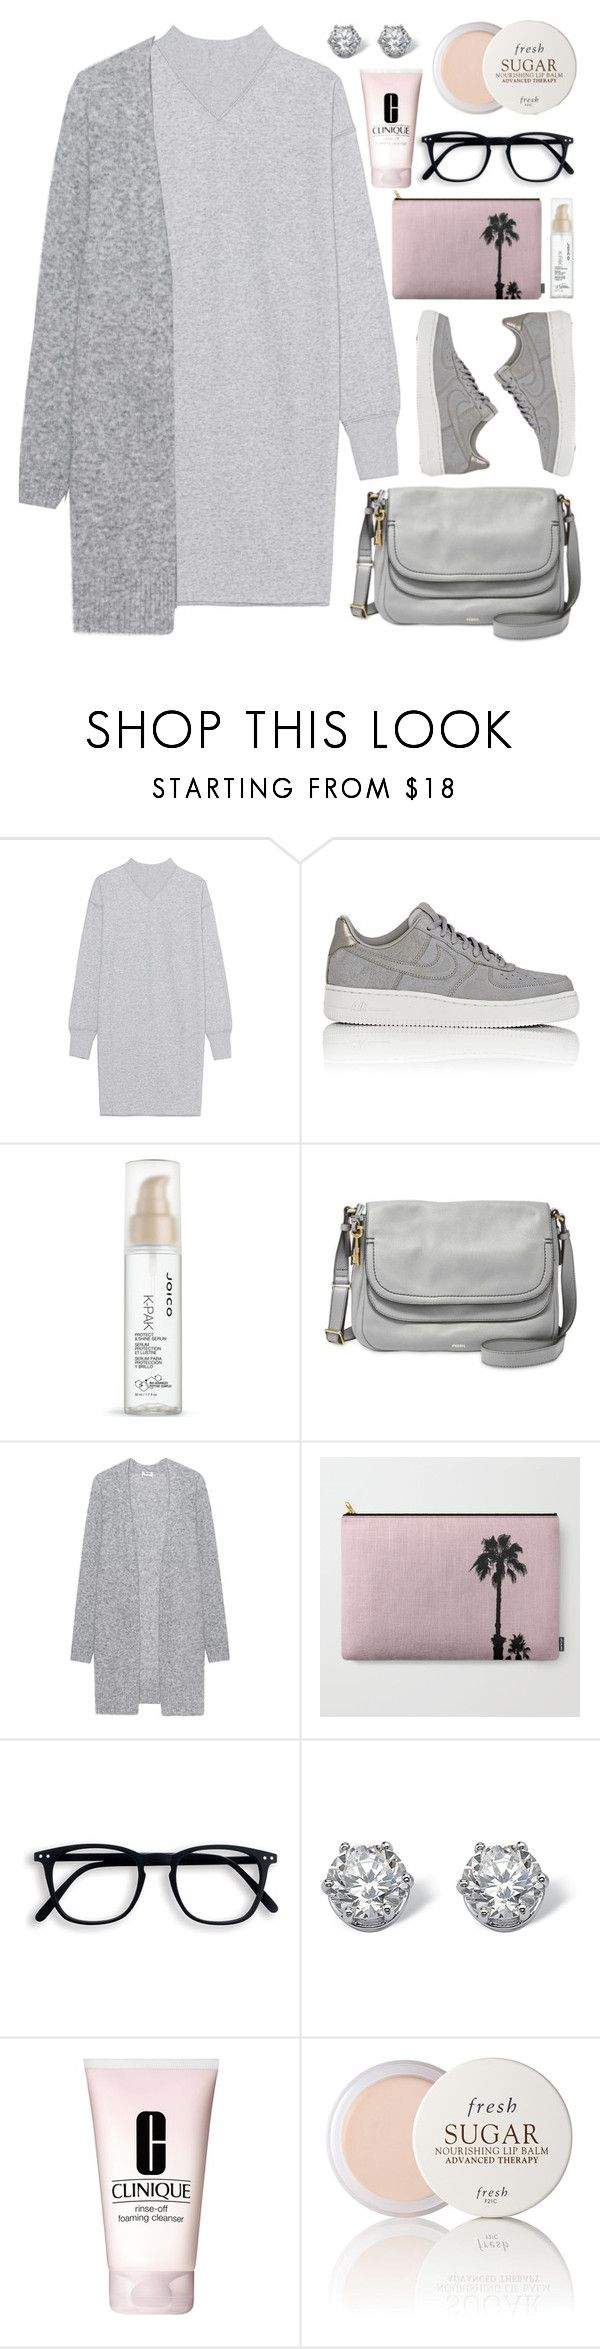 """""""OOTD - Grey Knitwear"""" by by-jwp ❤ liked on Polyvore featuring Étoile Isabel Marant, NIKE, Joico, FOSSIL, Acne Studios, Palm Beach Jewelry, Clinique and Fresh"""